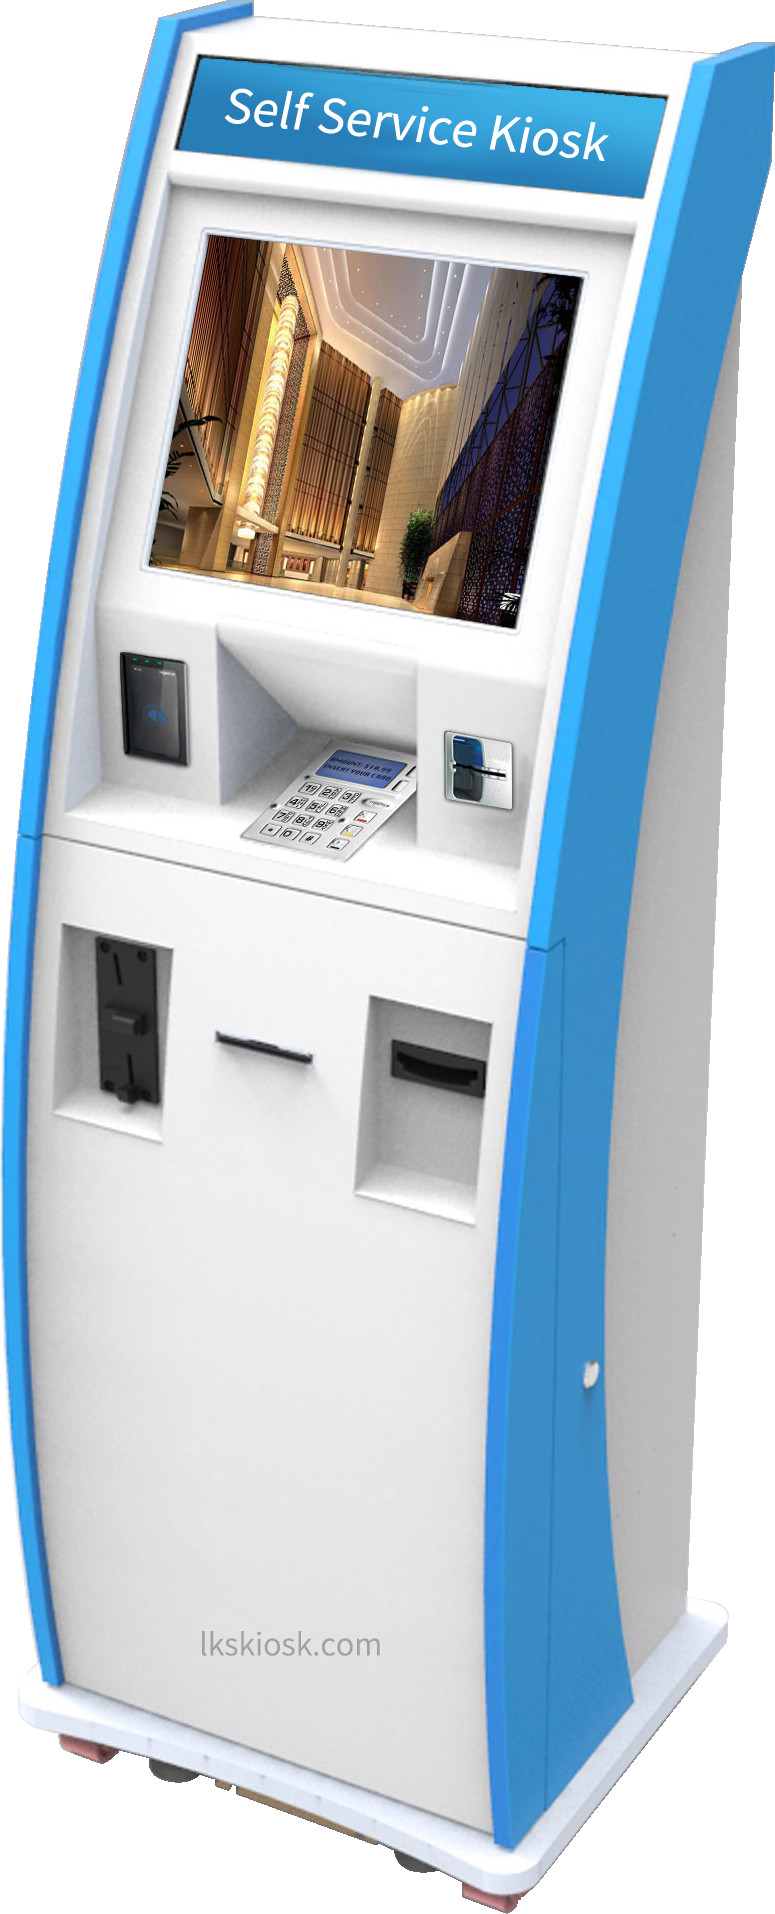 All in one Custom Bill Payment Kiosk,Interactive Kiosk, ATM Machine with Bank Card Reader & Cash Dispensser